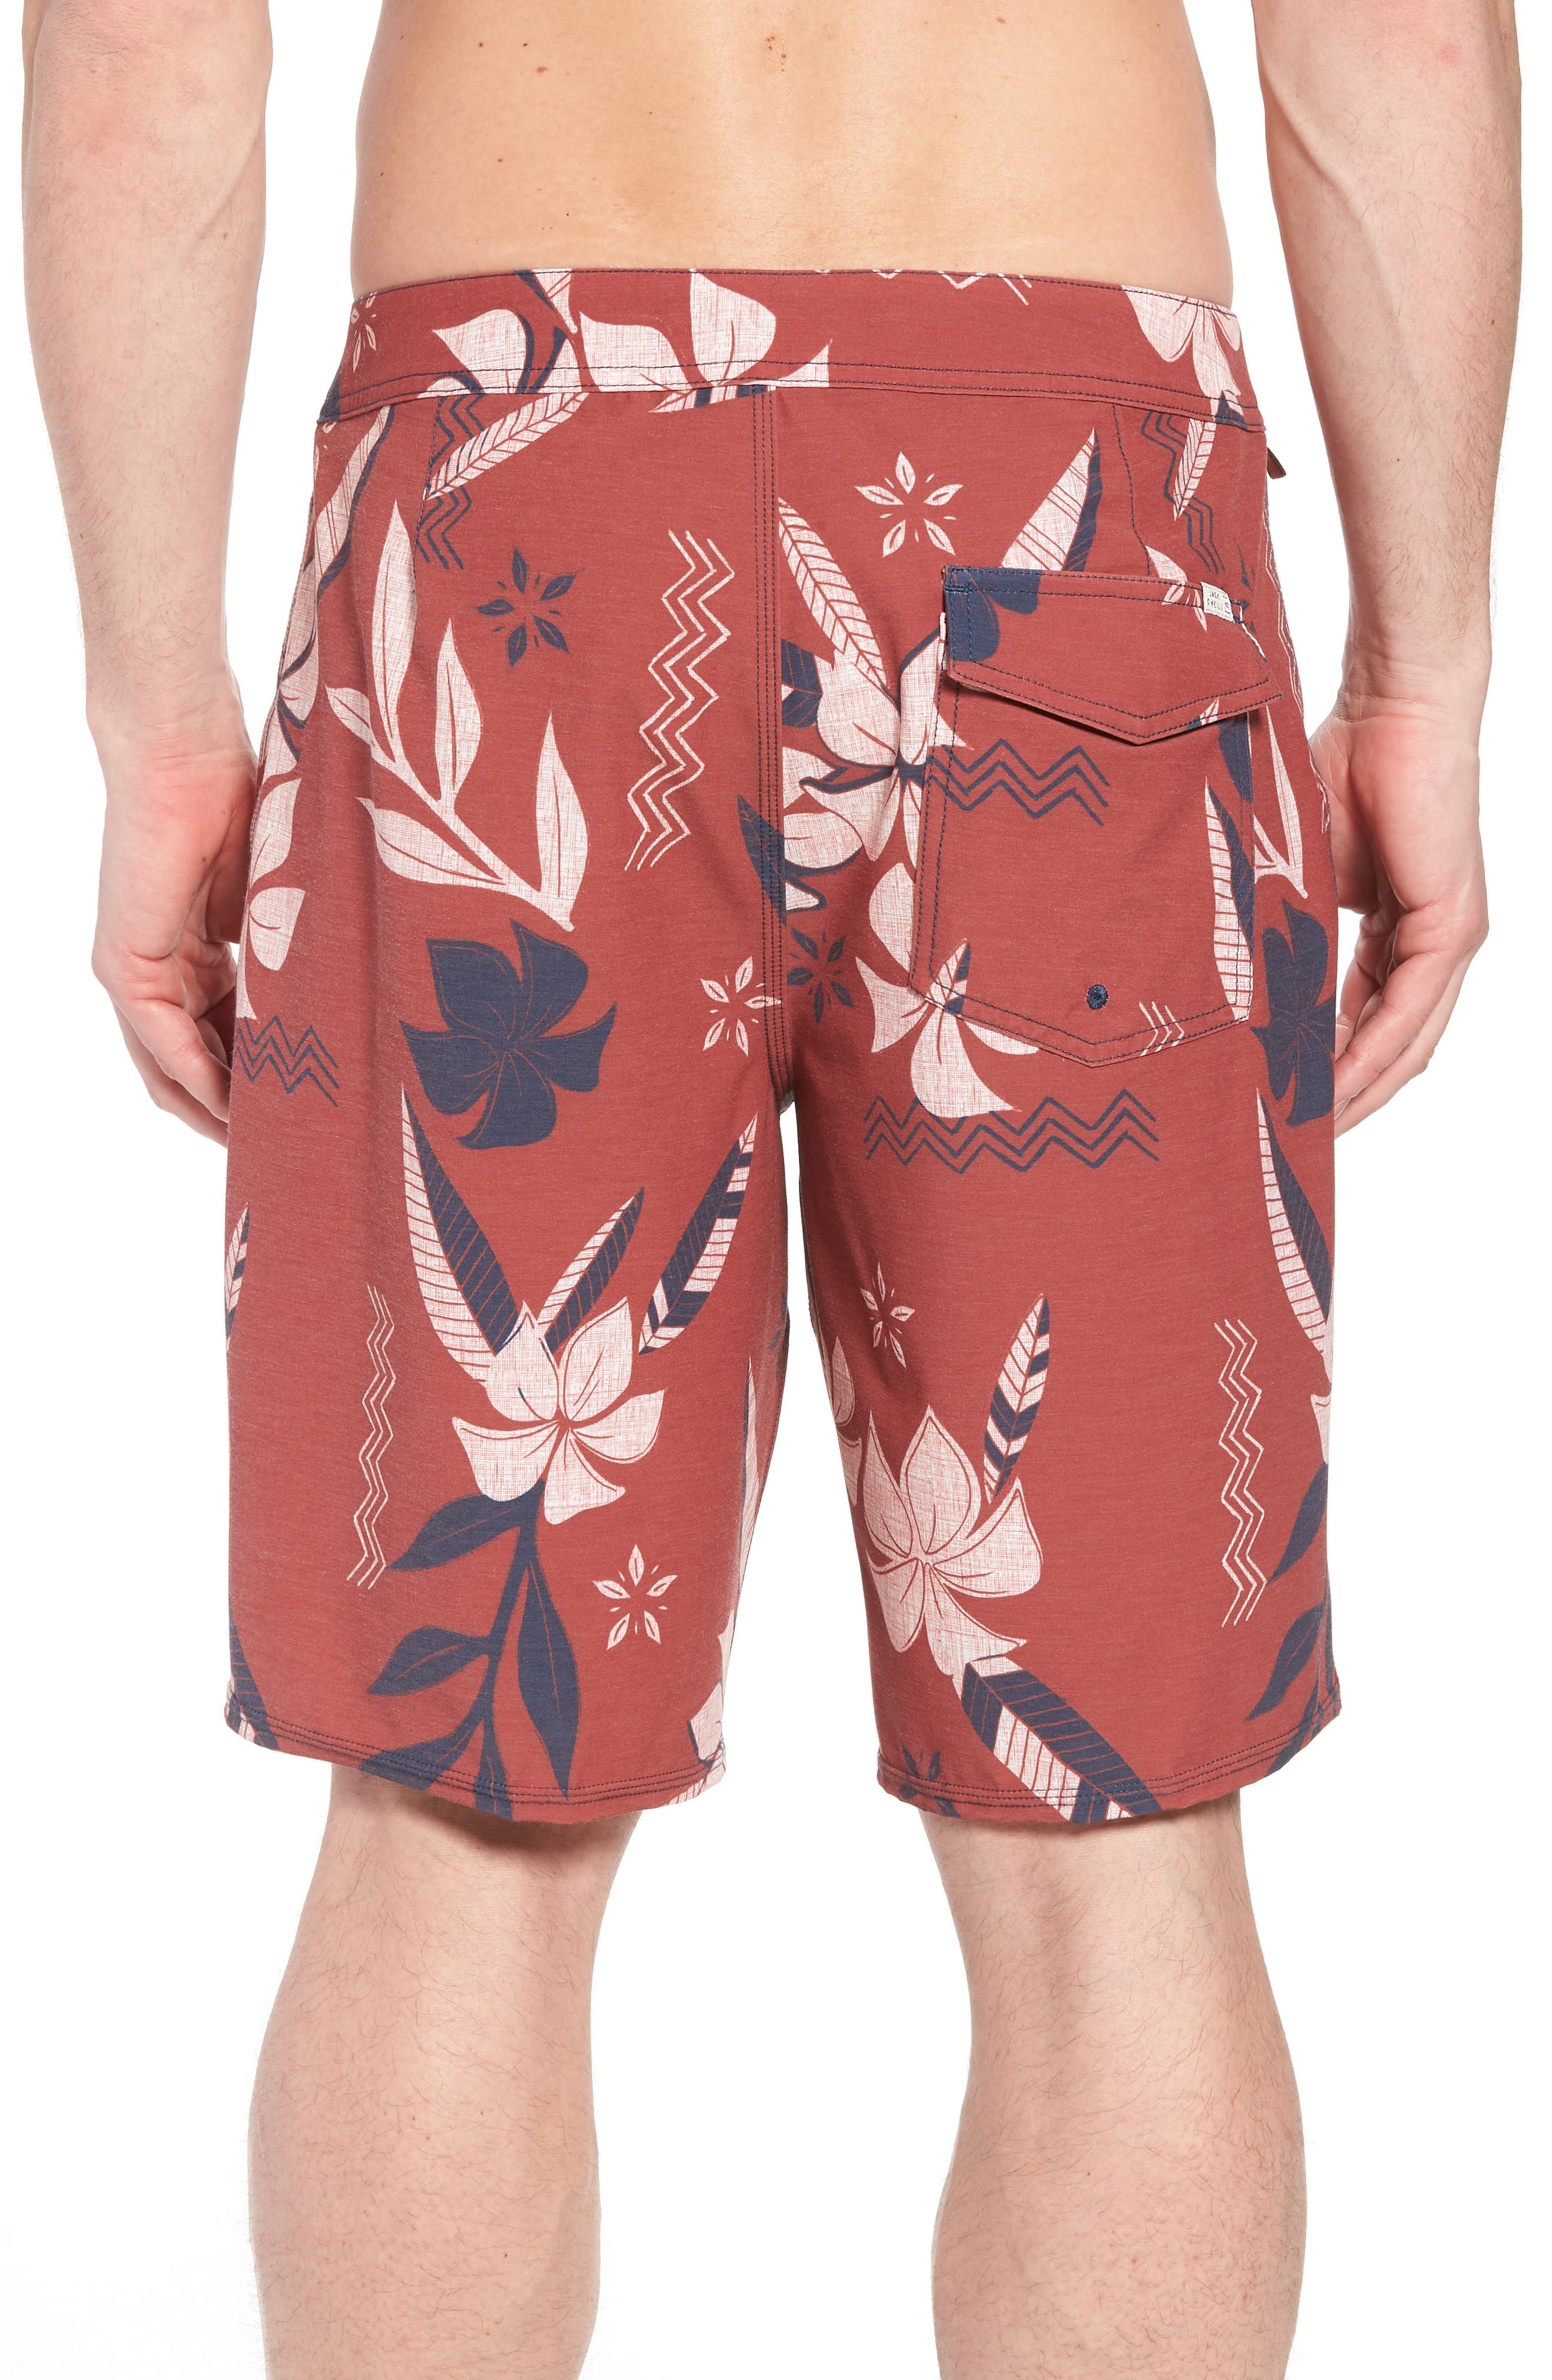 Maui Board Shorts,                             Alternate thumbnail 6, color,